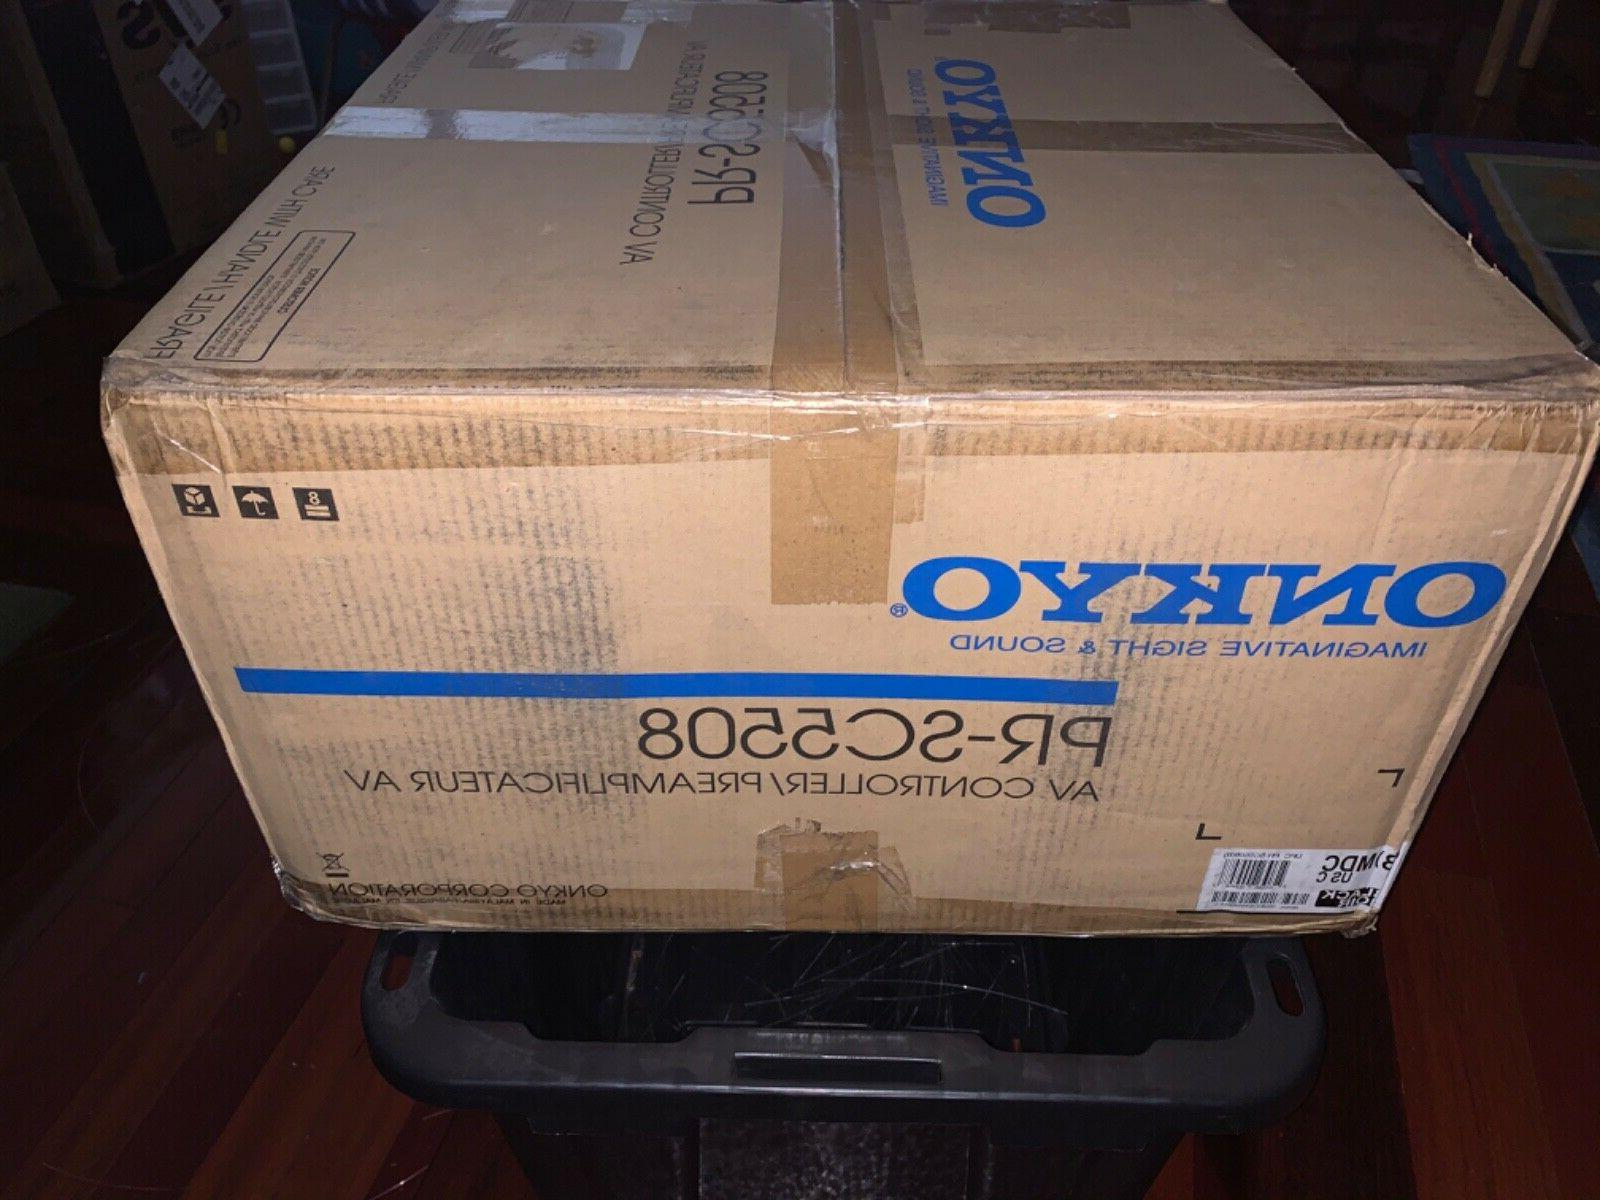 Onkyo Ultra 2 Plus 9.2 AV IN